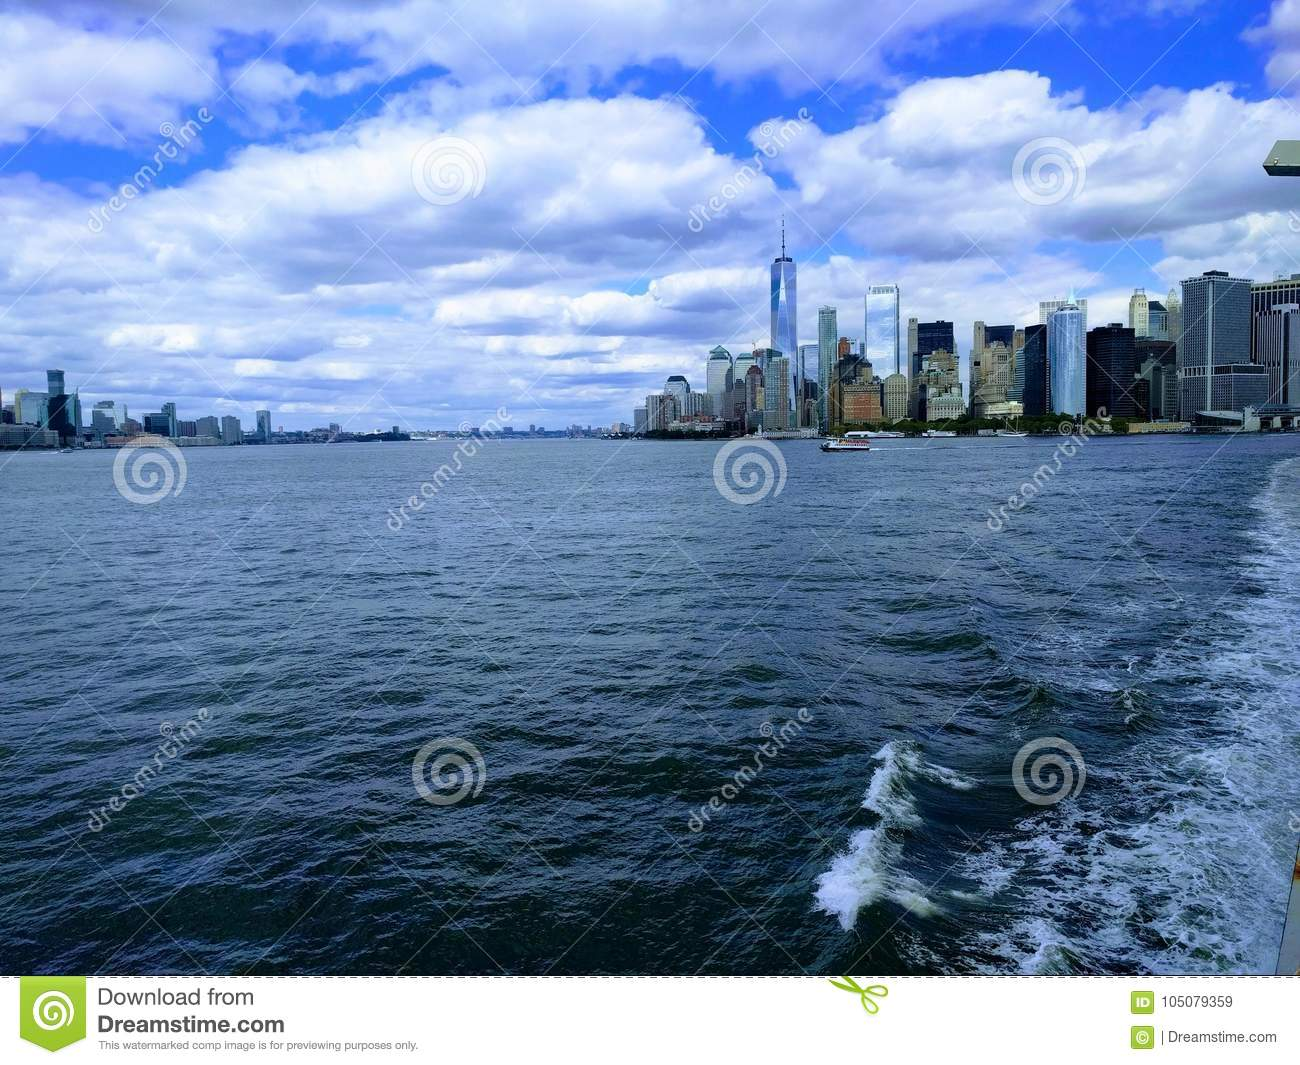 NYC from the Atlantic.!